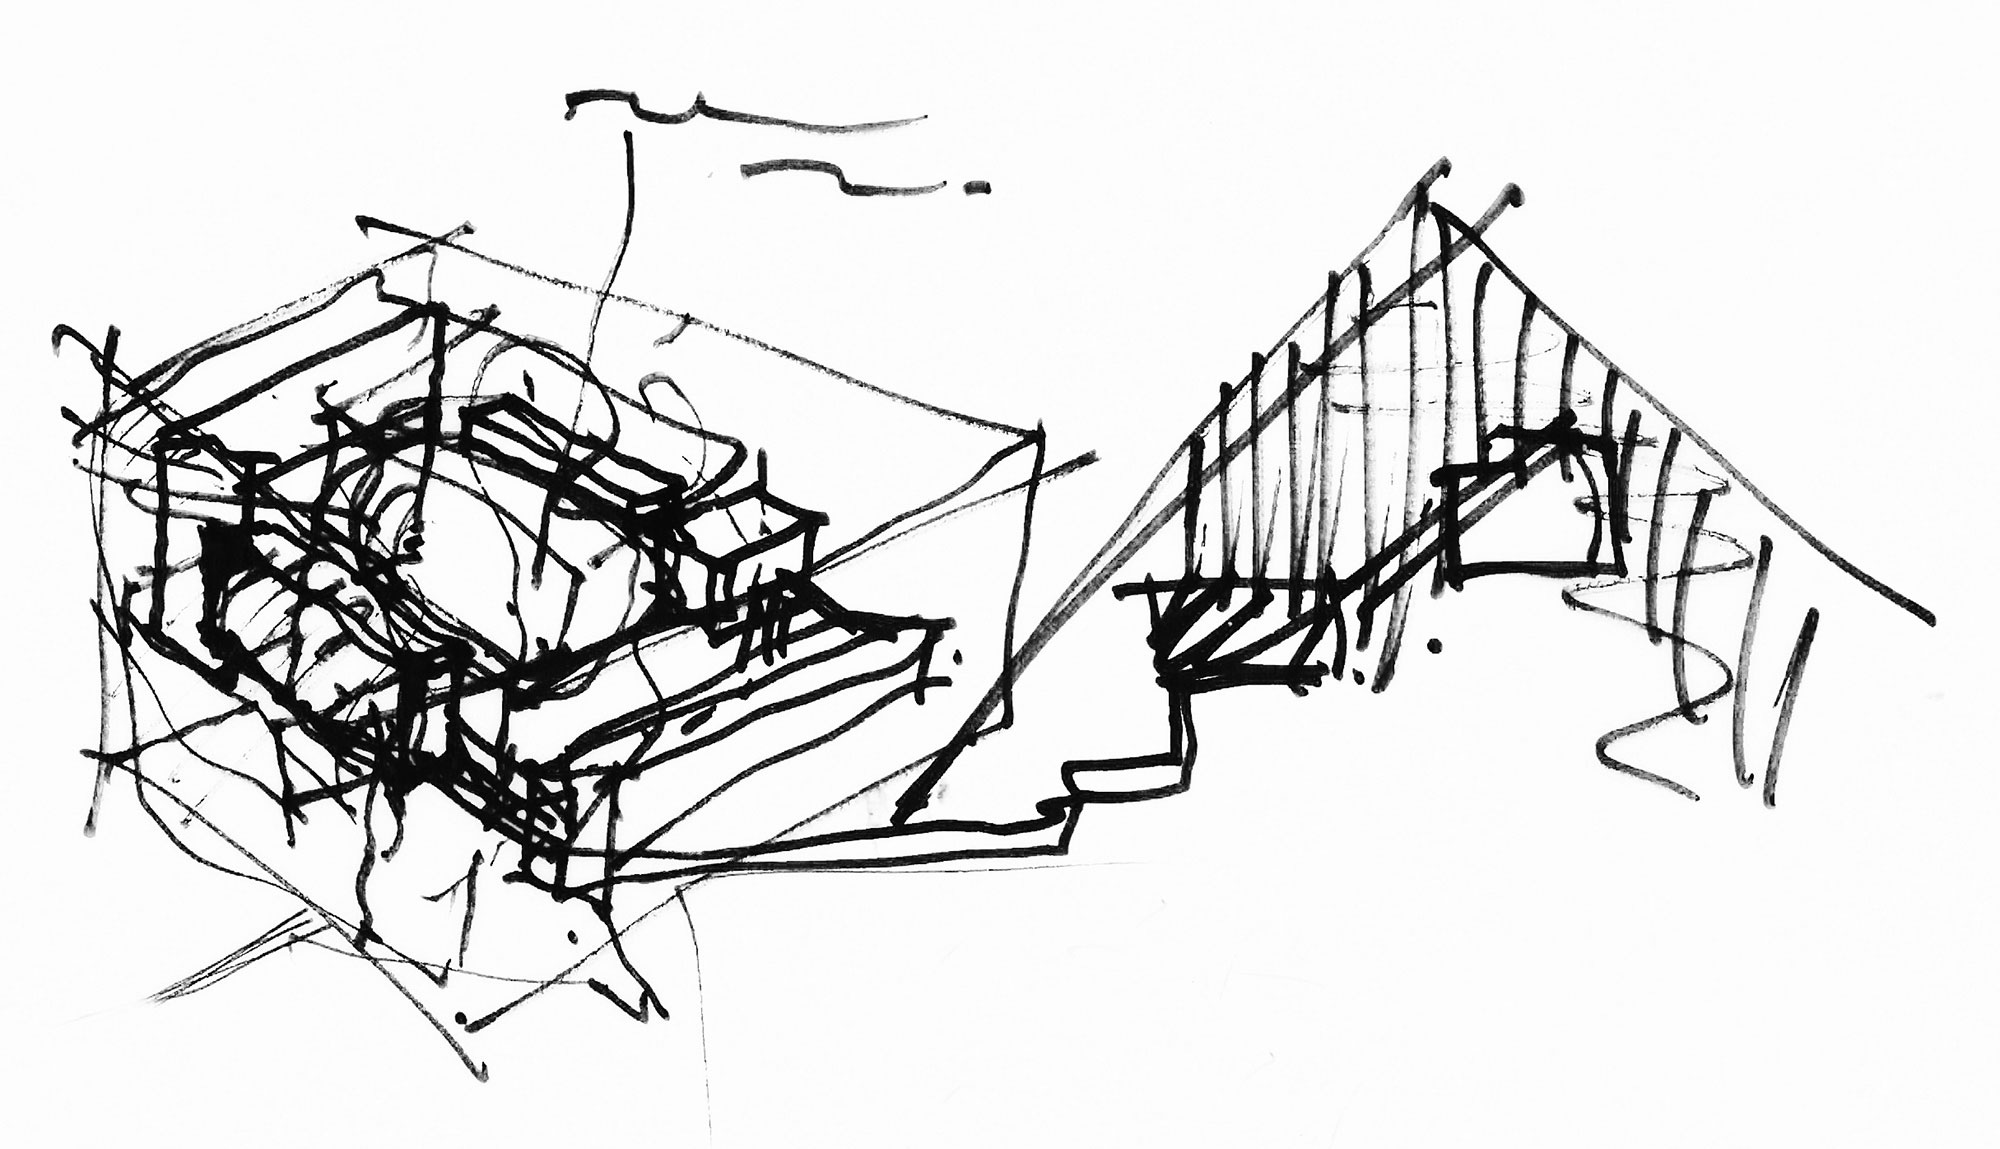 MCA-Timeless-Cube-Interior-sketch.jpg